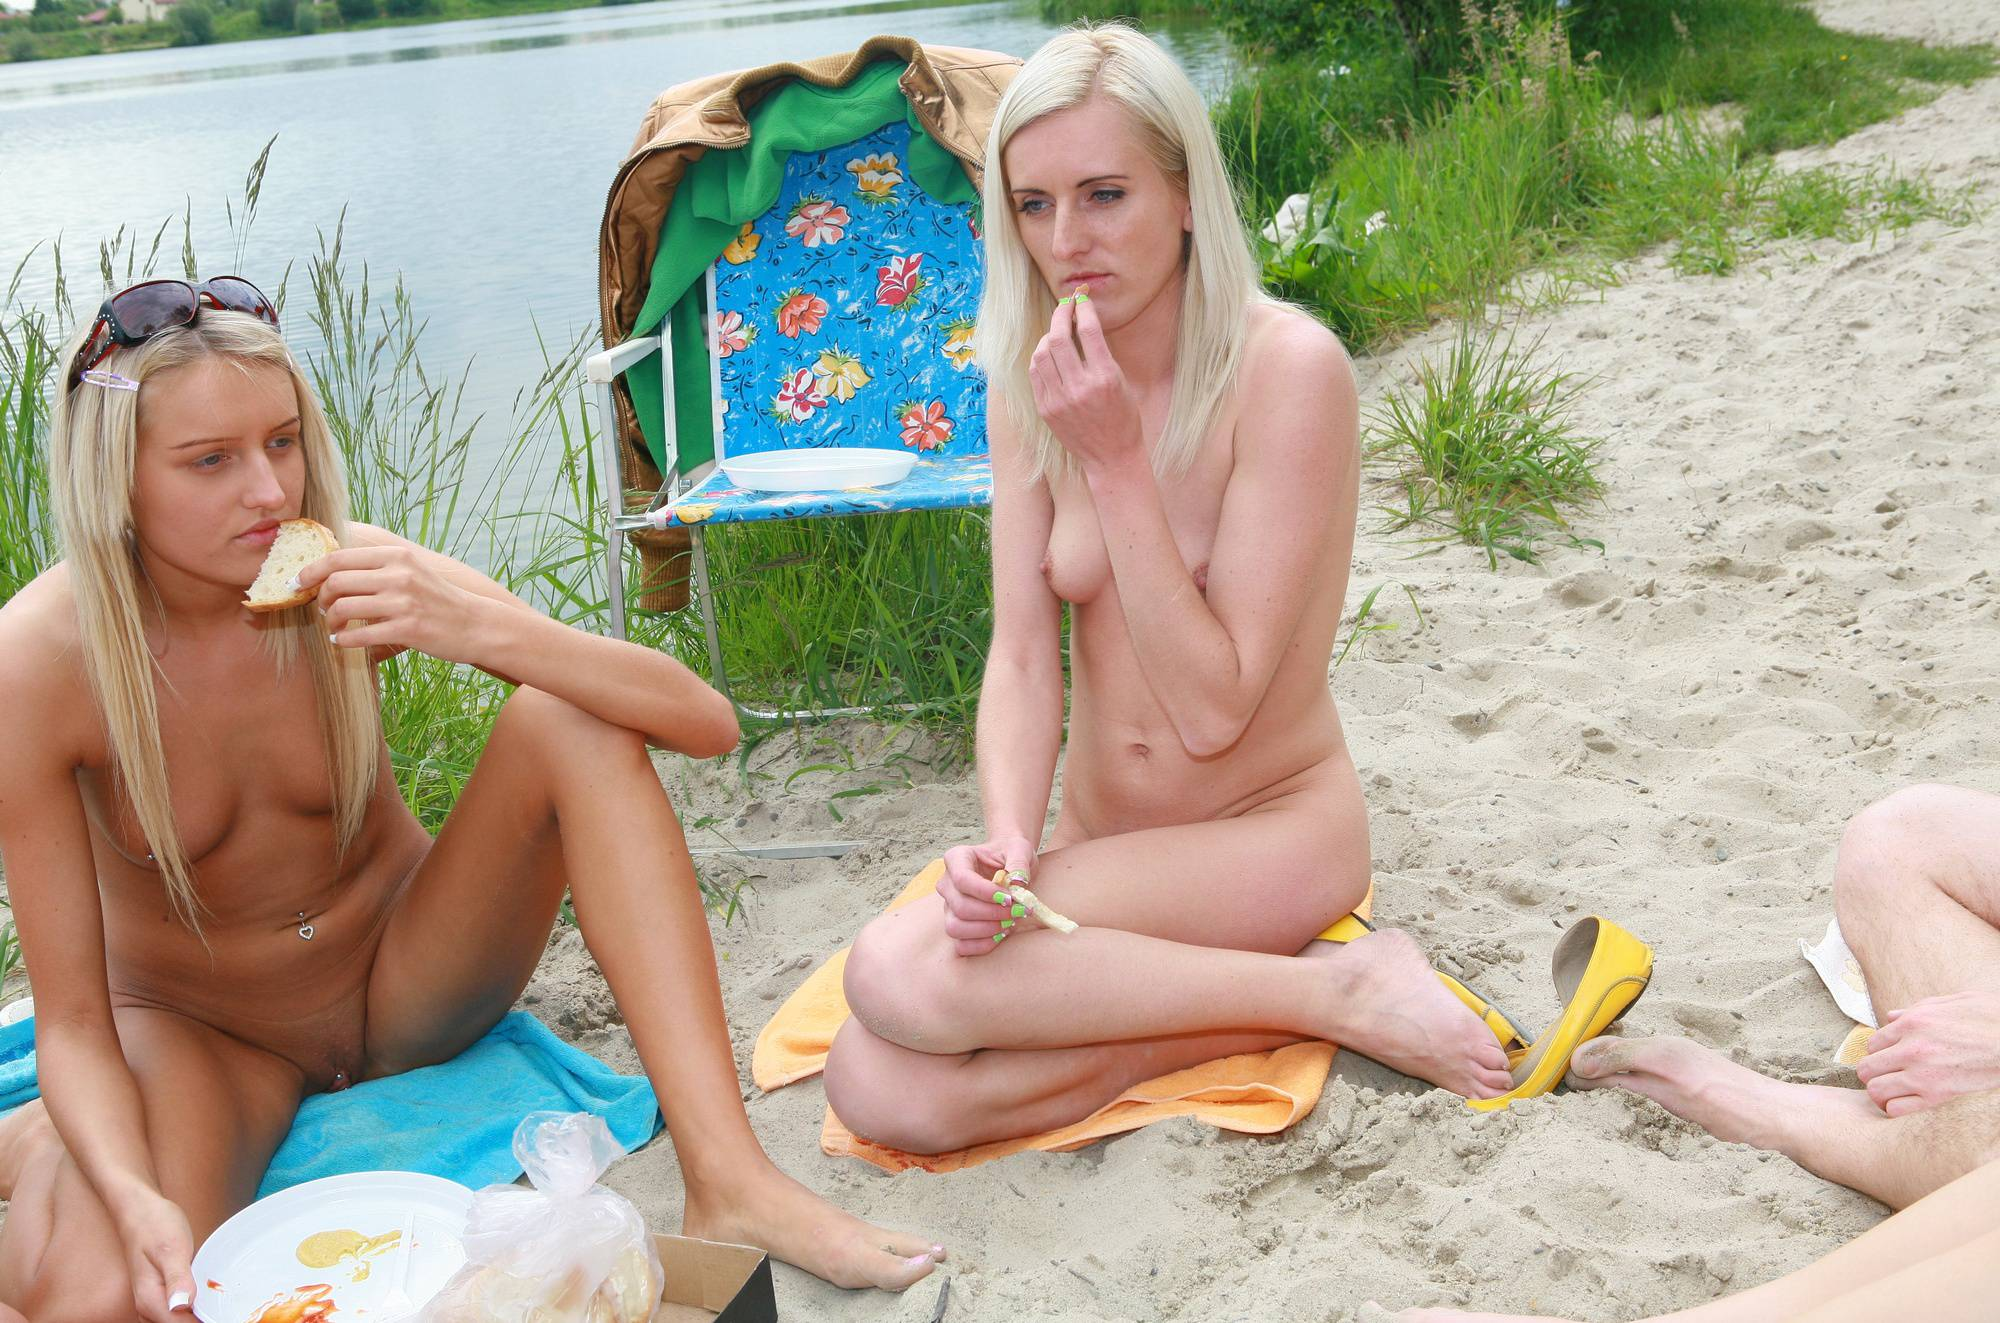 Nudist Photos Lakeside Picnic For All - 2